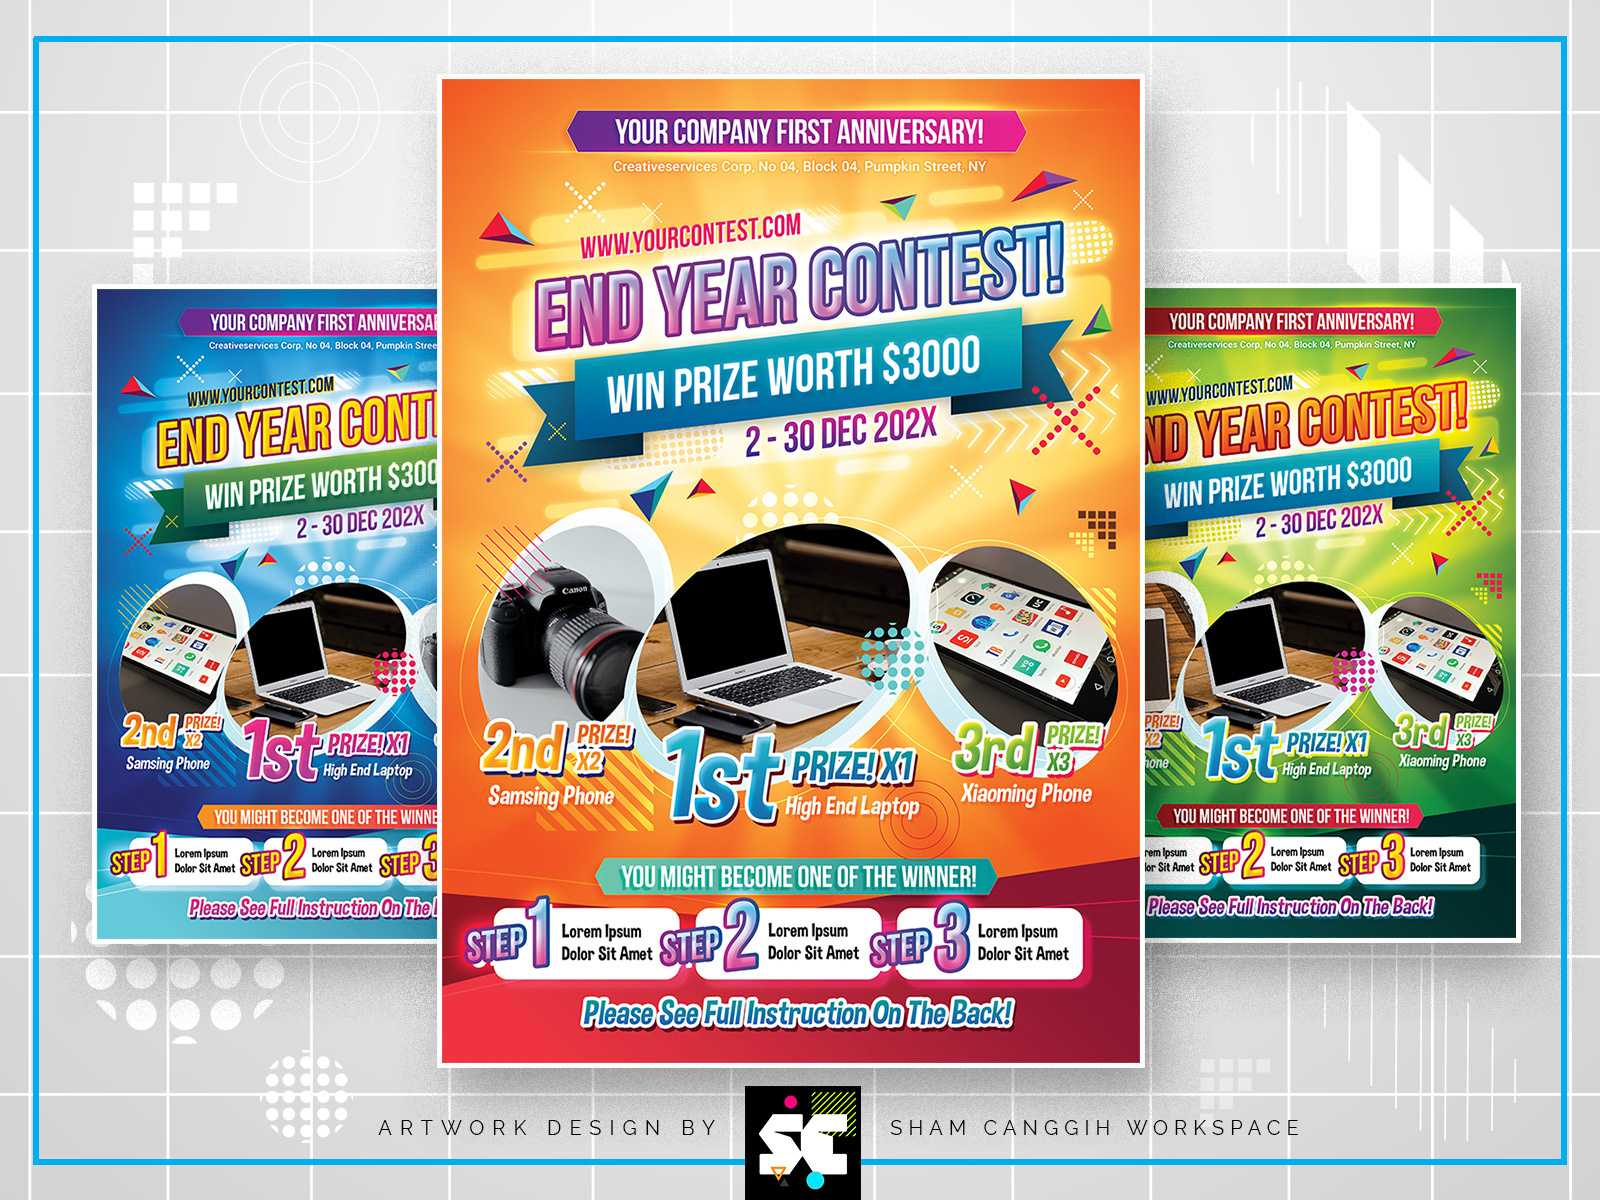 Contest Flyersc Workspace On Dribbble With Regard To Contest Flyer Template